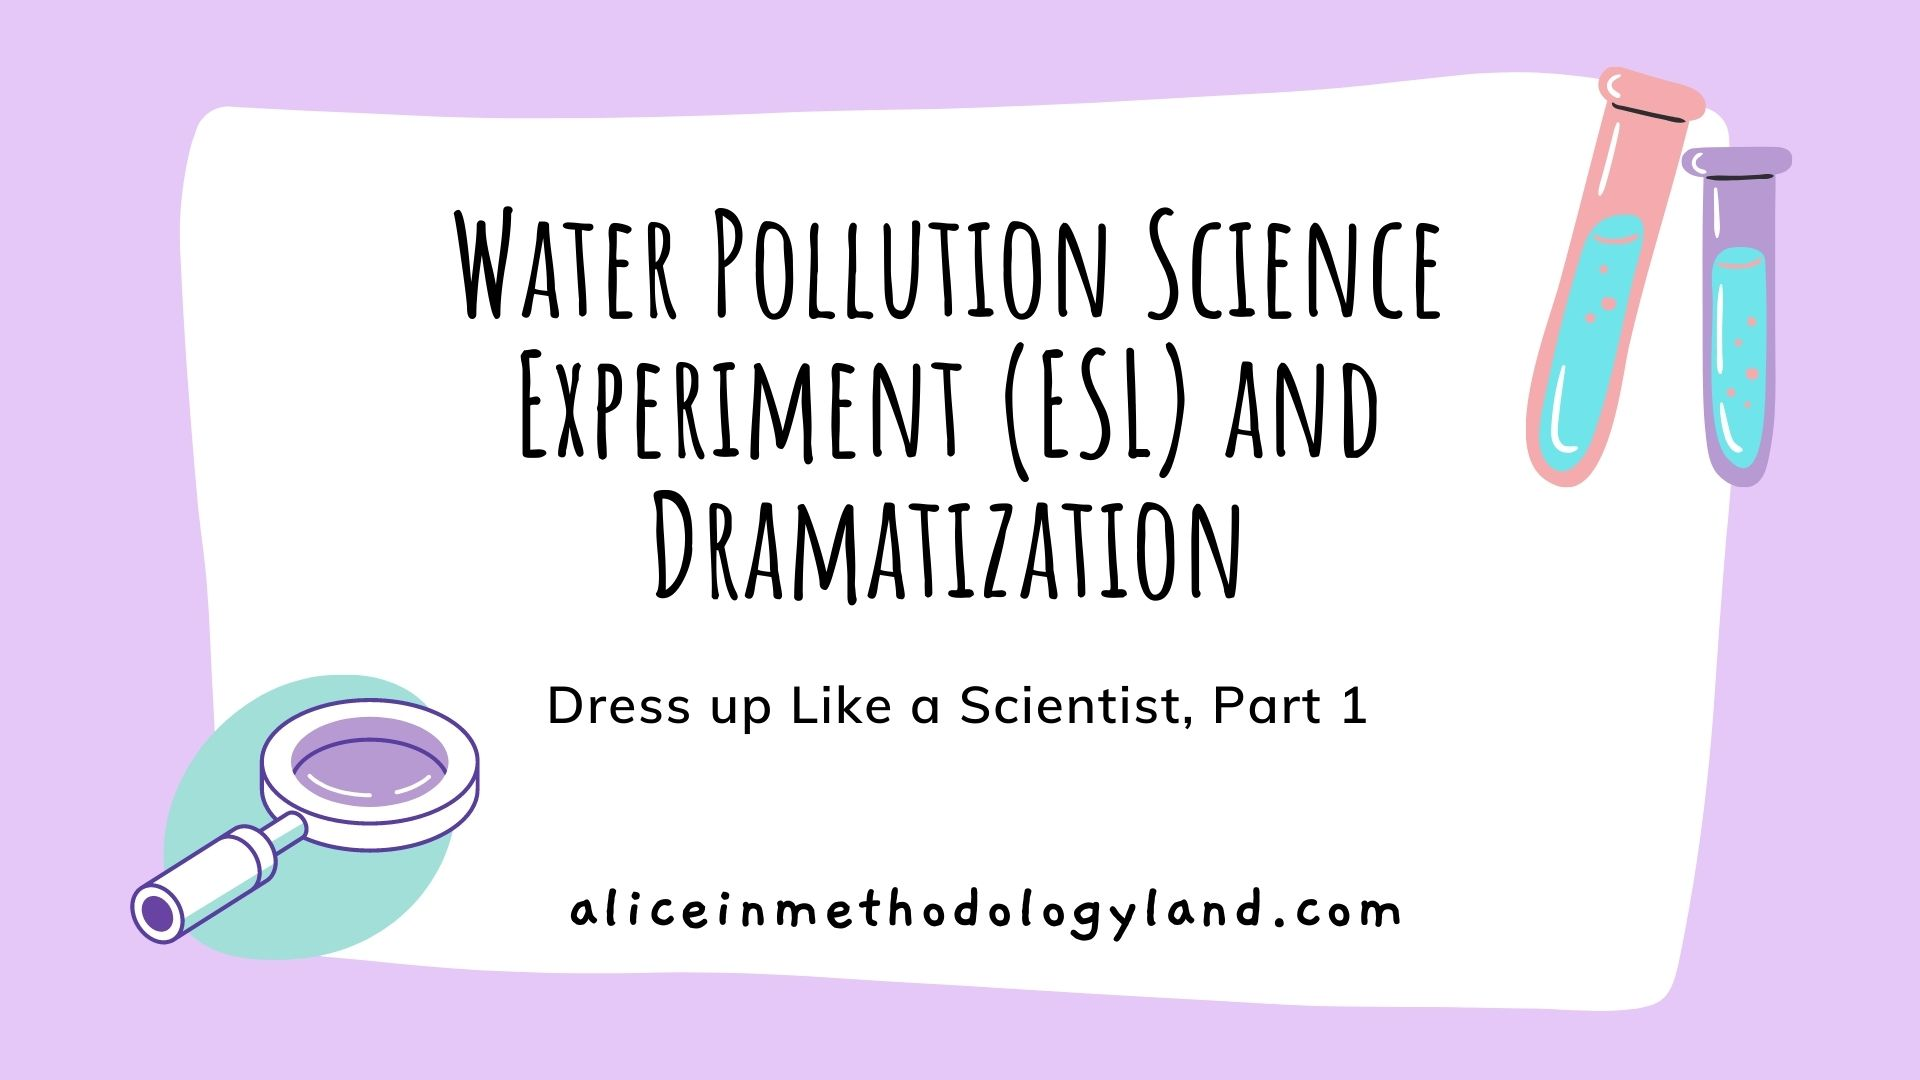 Water Pollution Science Experiment (ESL) and Dramatization: Dress up Like a Scientist, Part 1